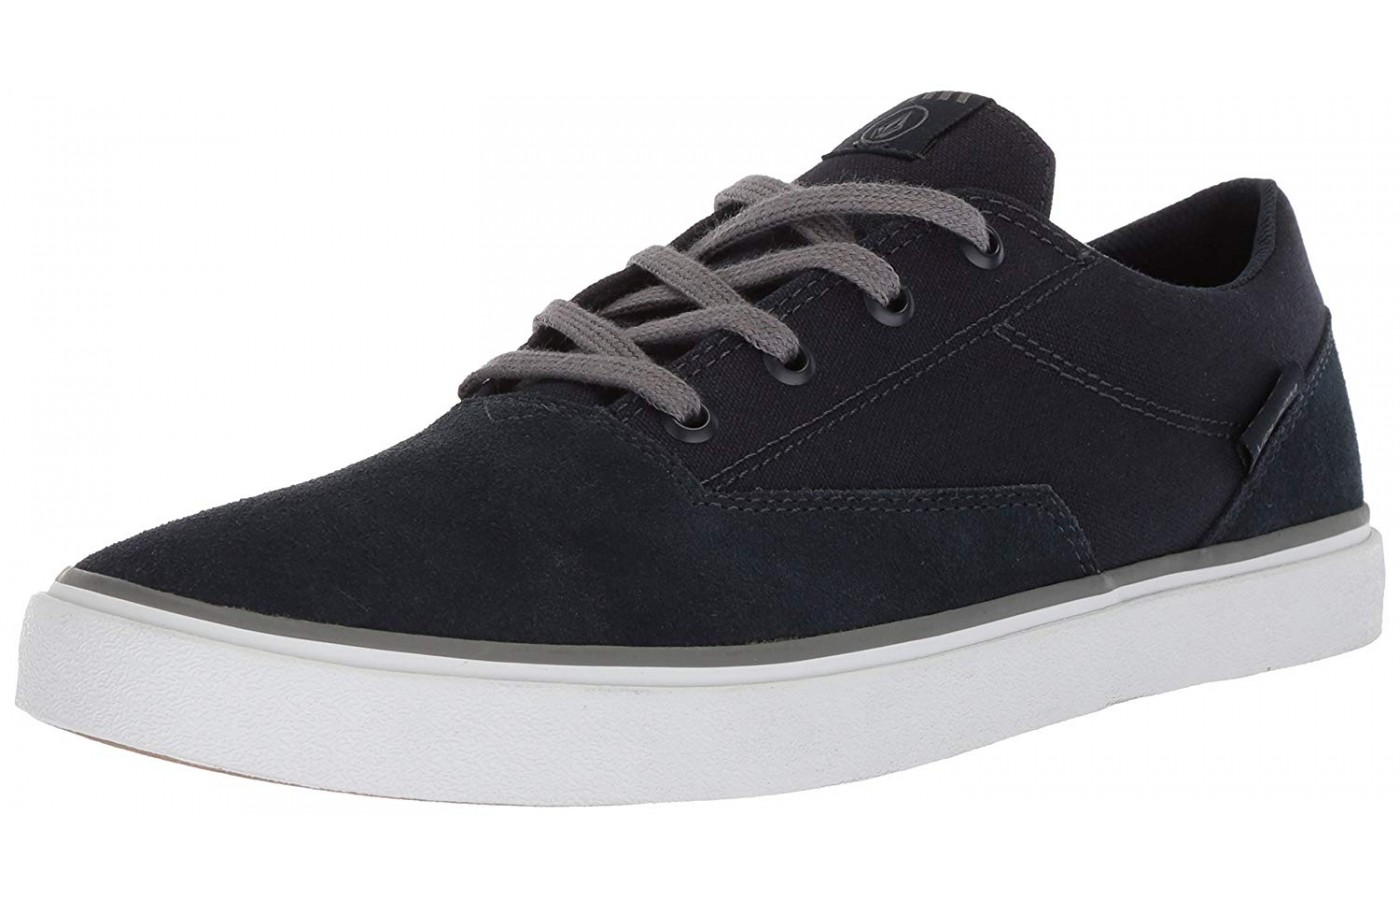 Volcom Draw Lo Angled View